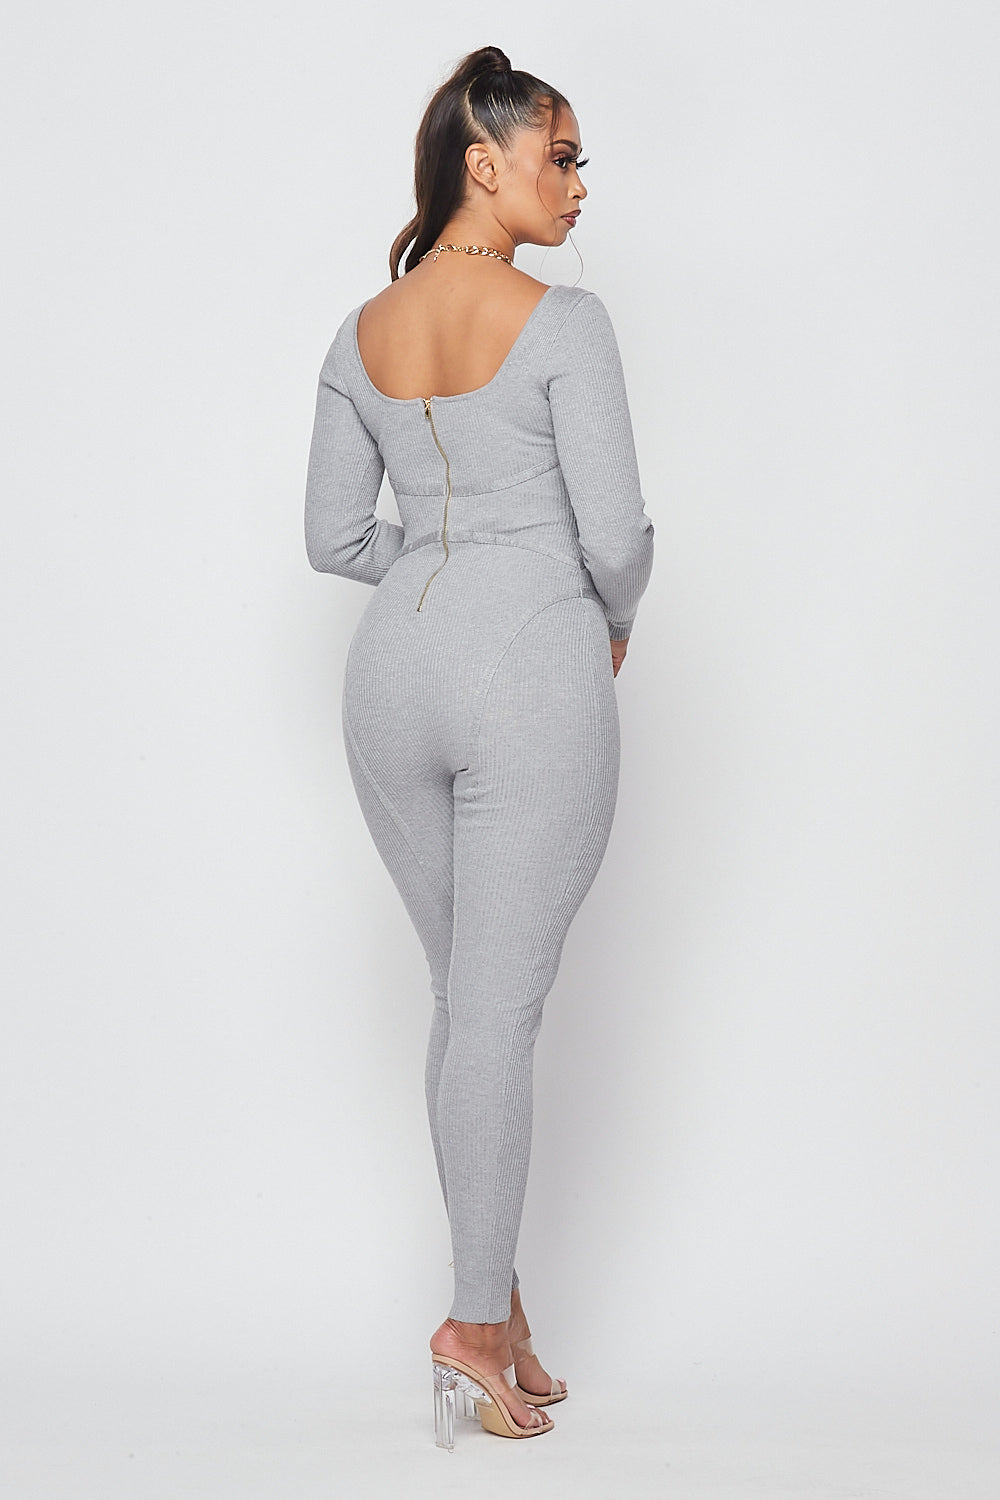 Chic Knit Long Sleeve Jumpsuit-H. GREY - Fashion House USA